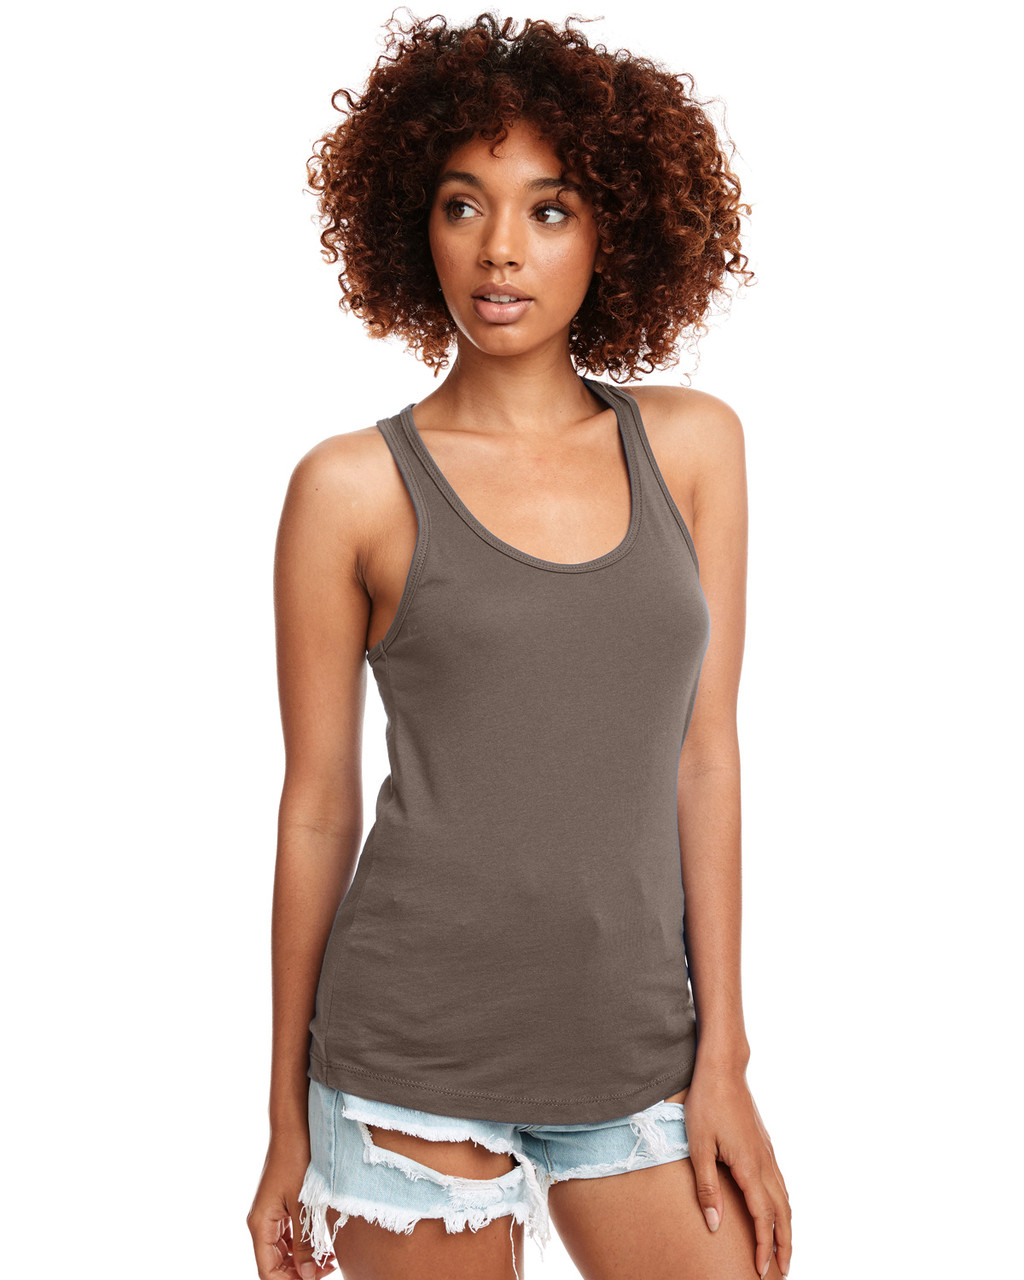 Warm Grey - N1533 Next Level Ideal Racerback Tank Top | Blankclothing.ca